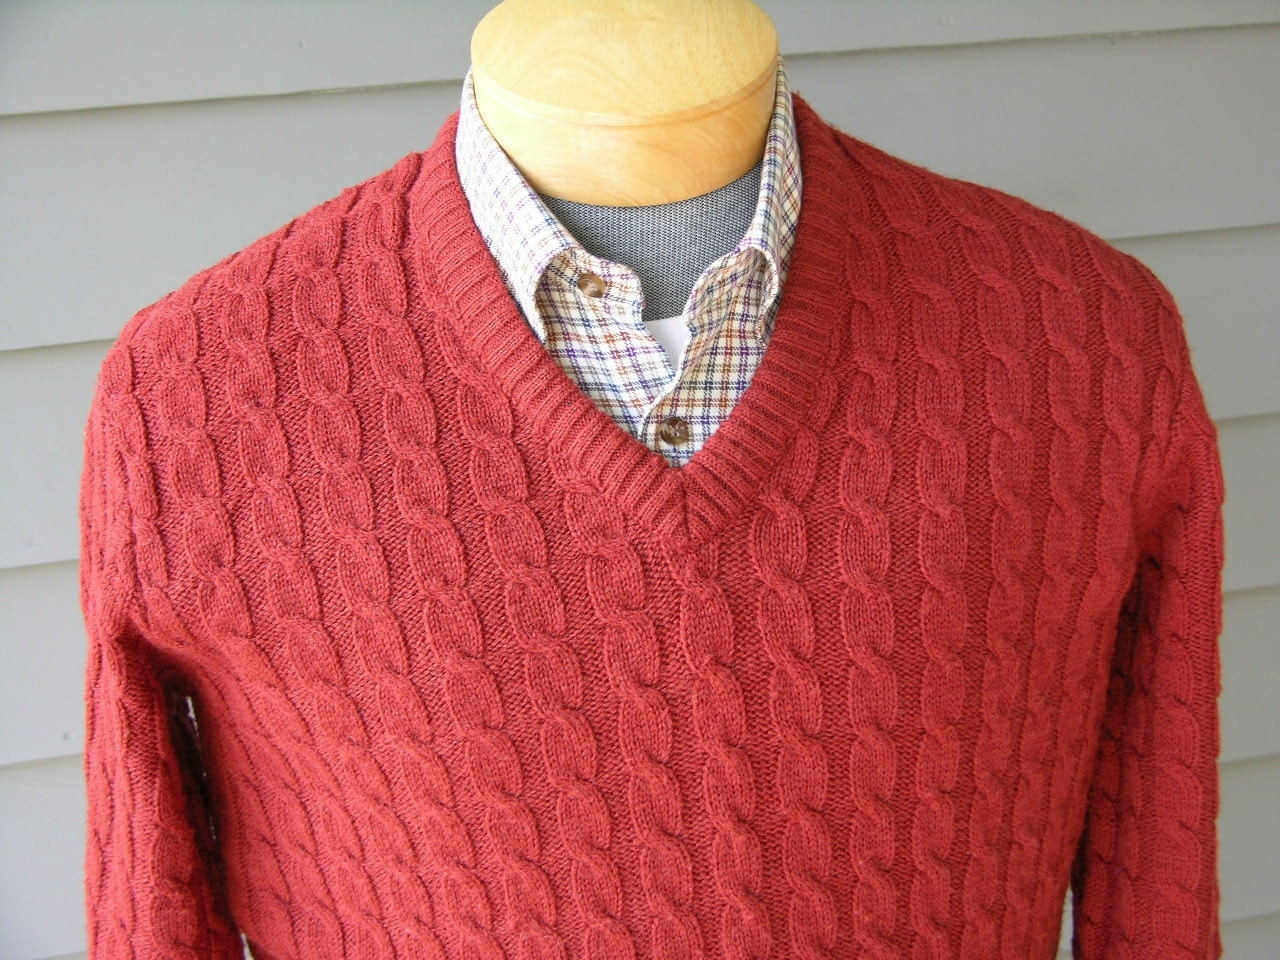 vintage 60's 70's Men's V neck pullover sweater.